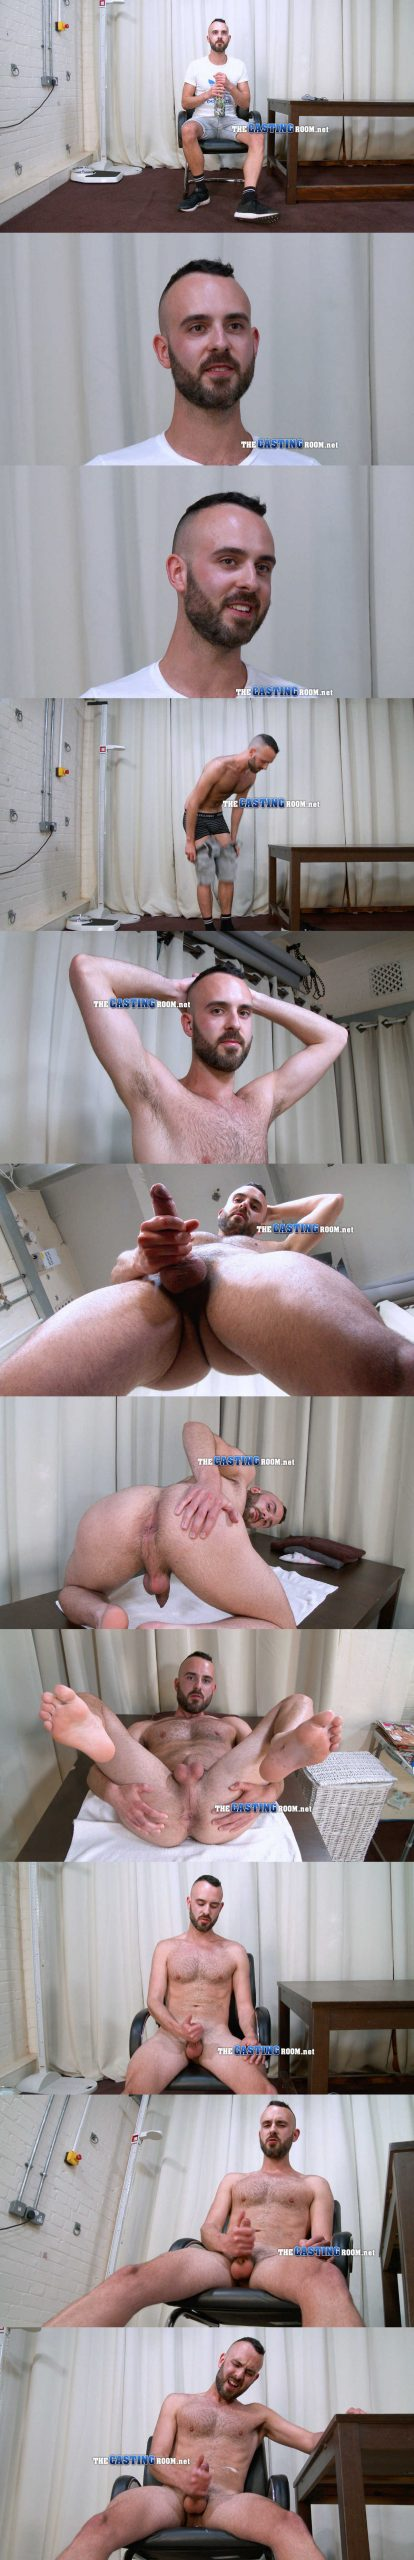 bearded guy jay stripping naked and wanking the casting room